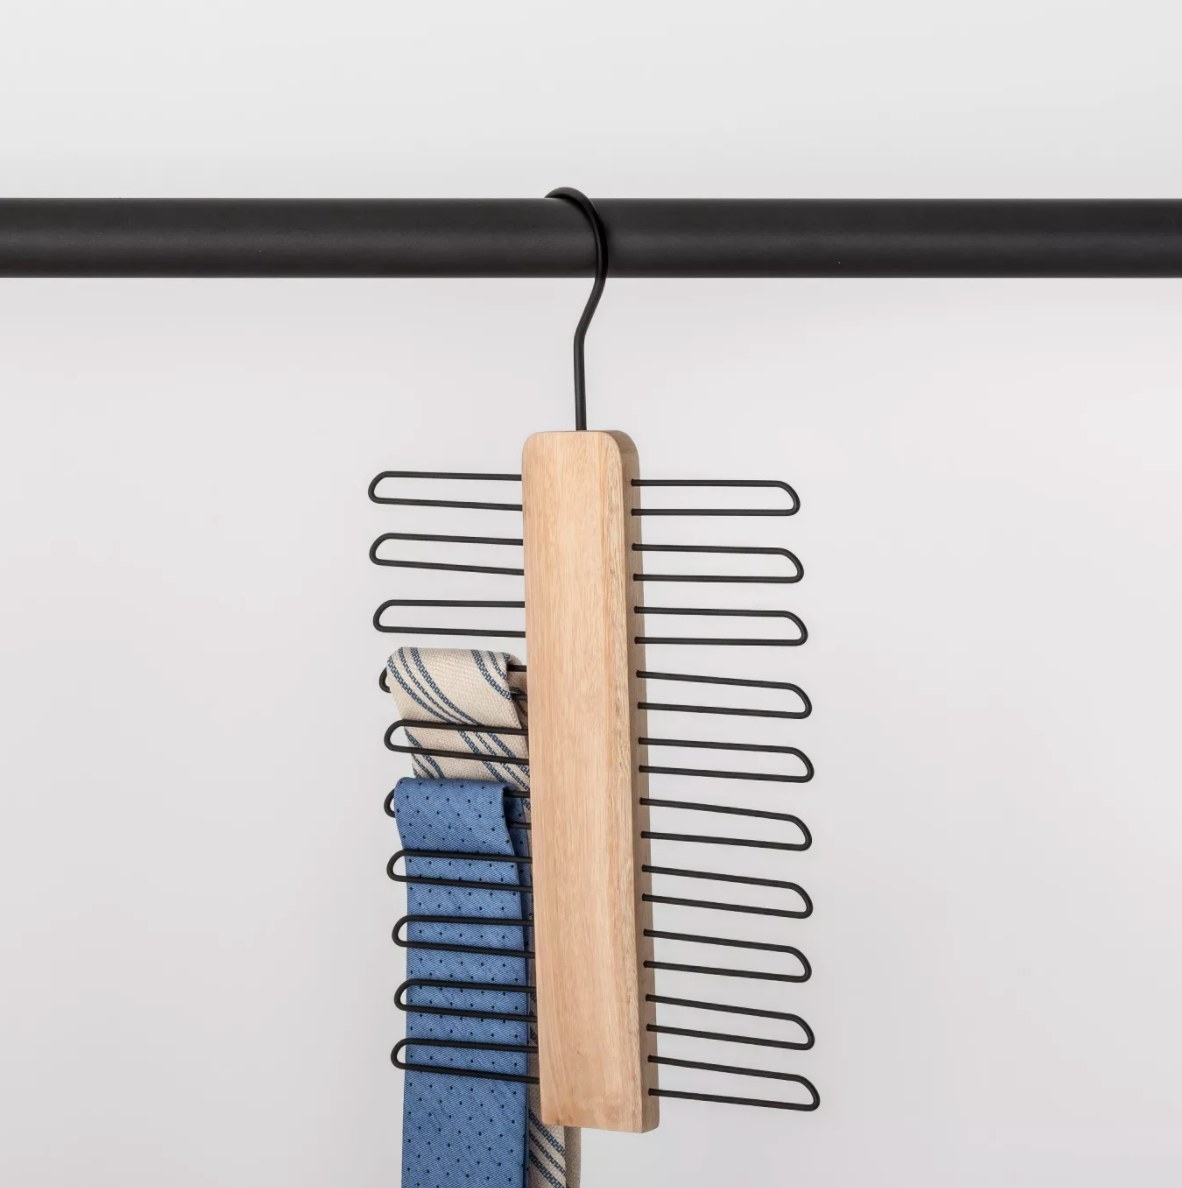 A wooden and metal tie hanger with two ties